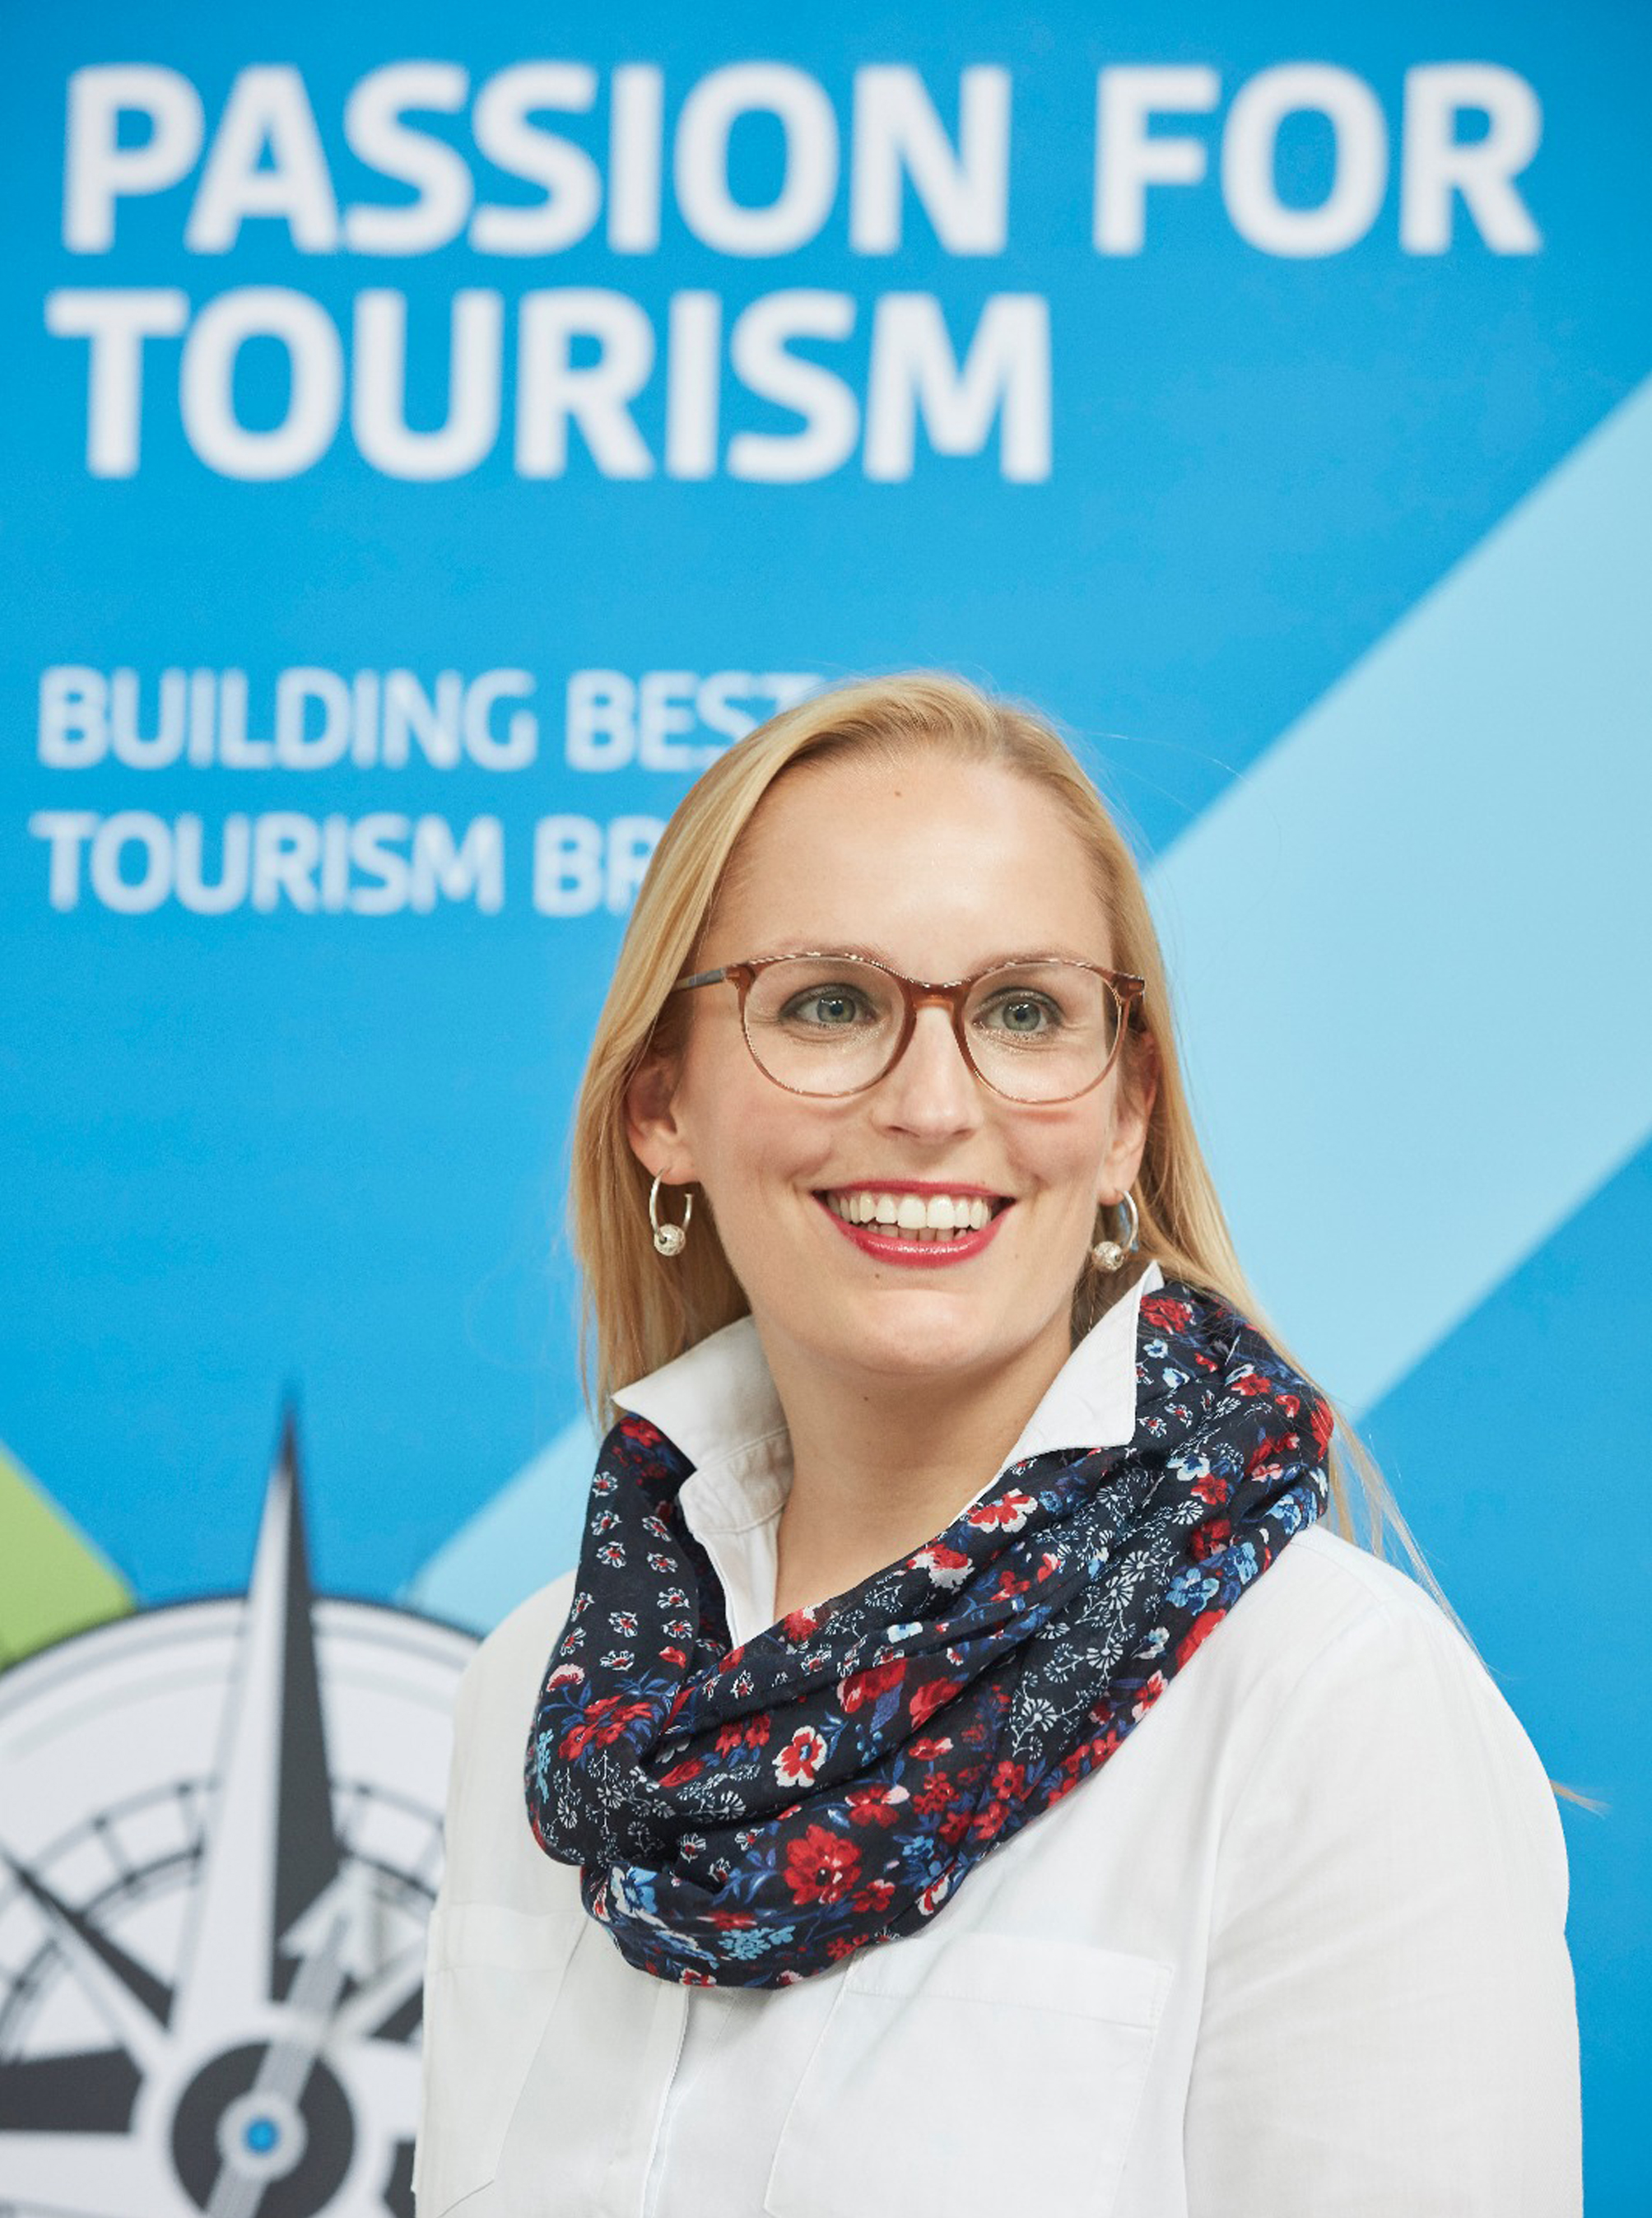 Verena Feyock, Managing Partner, St. Elmo's Tourismusmarketing